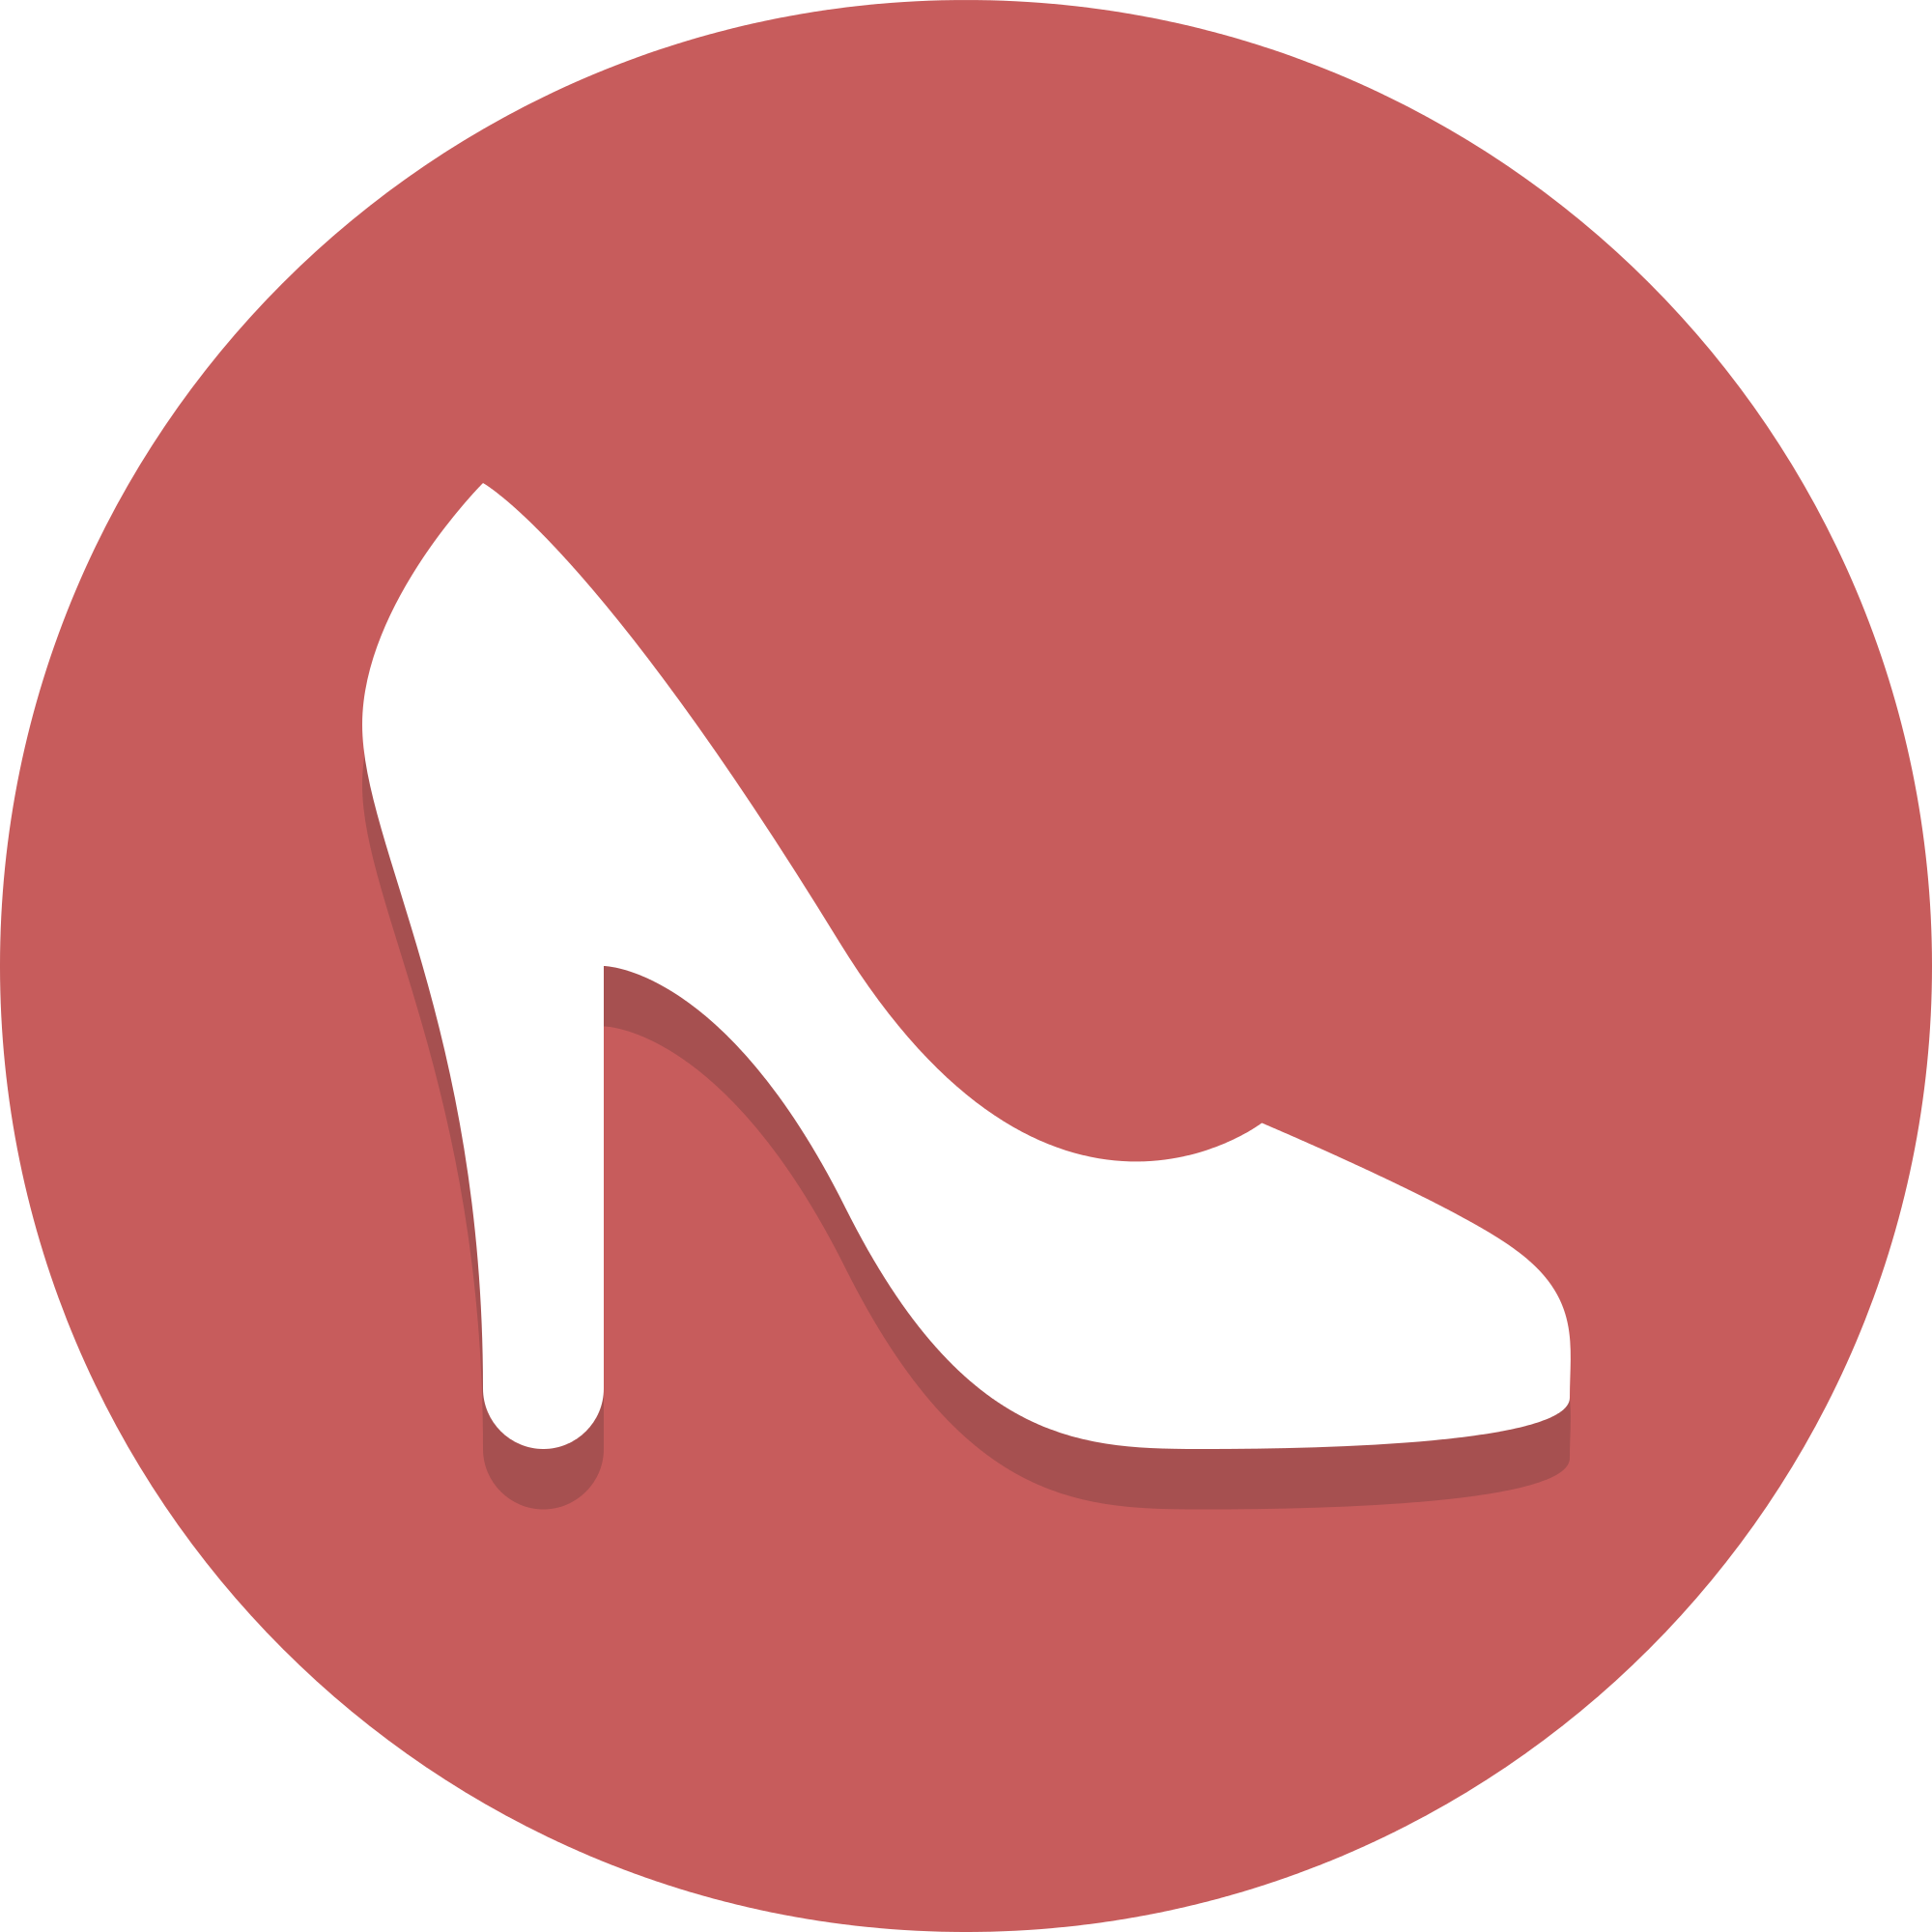 Fashion icon png. File circle icons svg